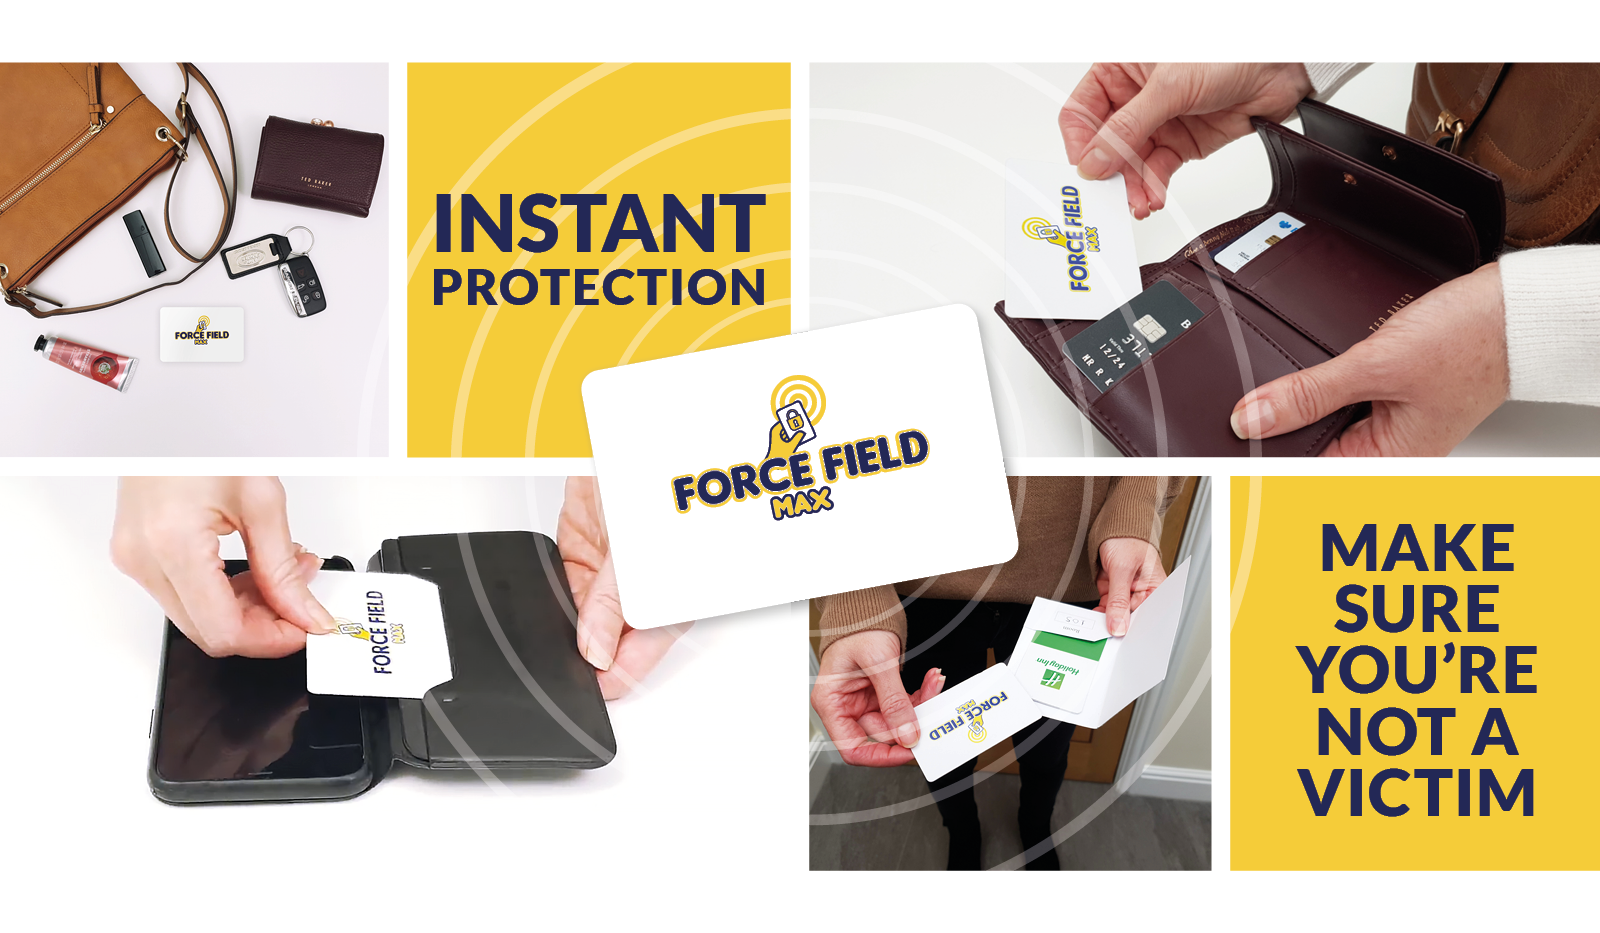 Instant Protection - Make sure you're not a victim